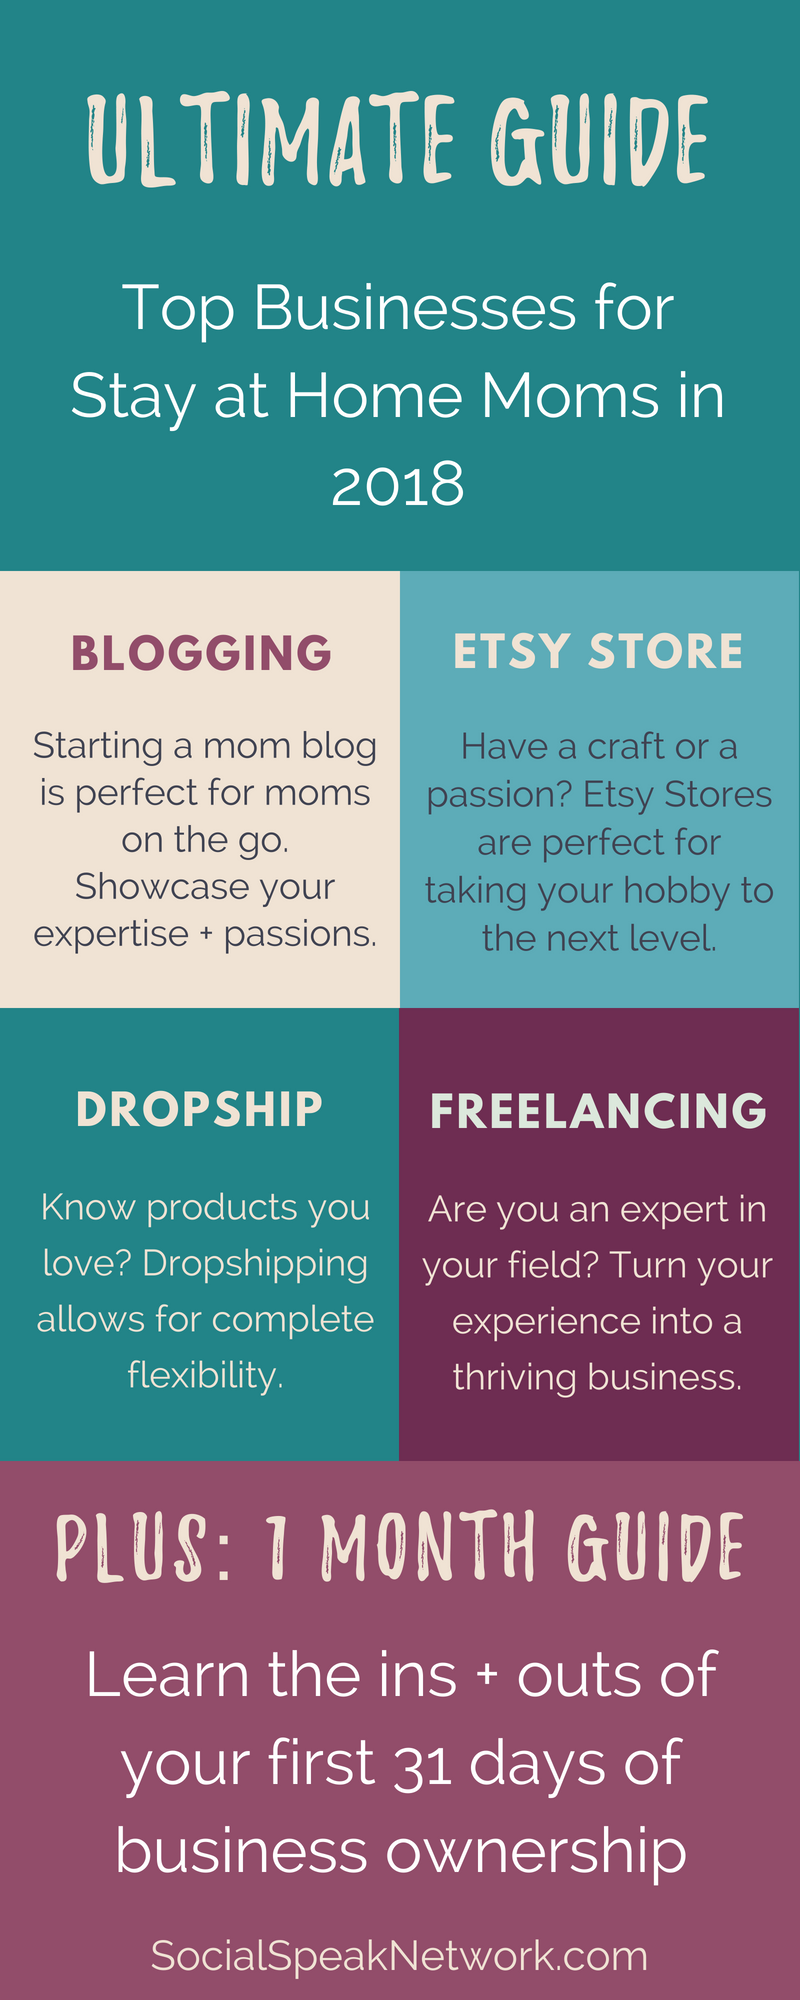 Ultimate guide to mom businesses, business for moms, stay at home mom, start a business, #sheboss #dropshipping #etsy #freelancing #momblog, start a business as a stay at home mom, earn money as a mom